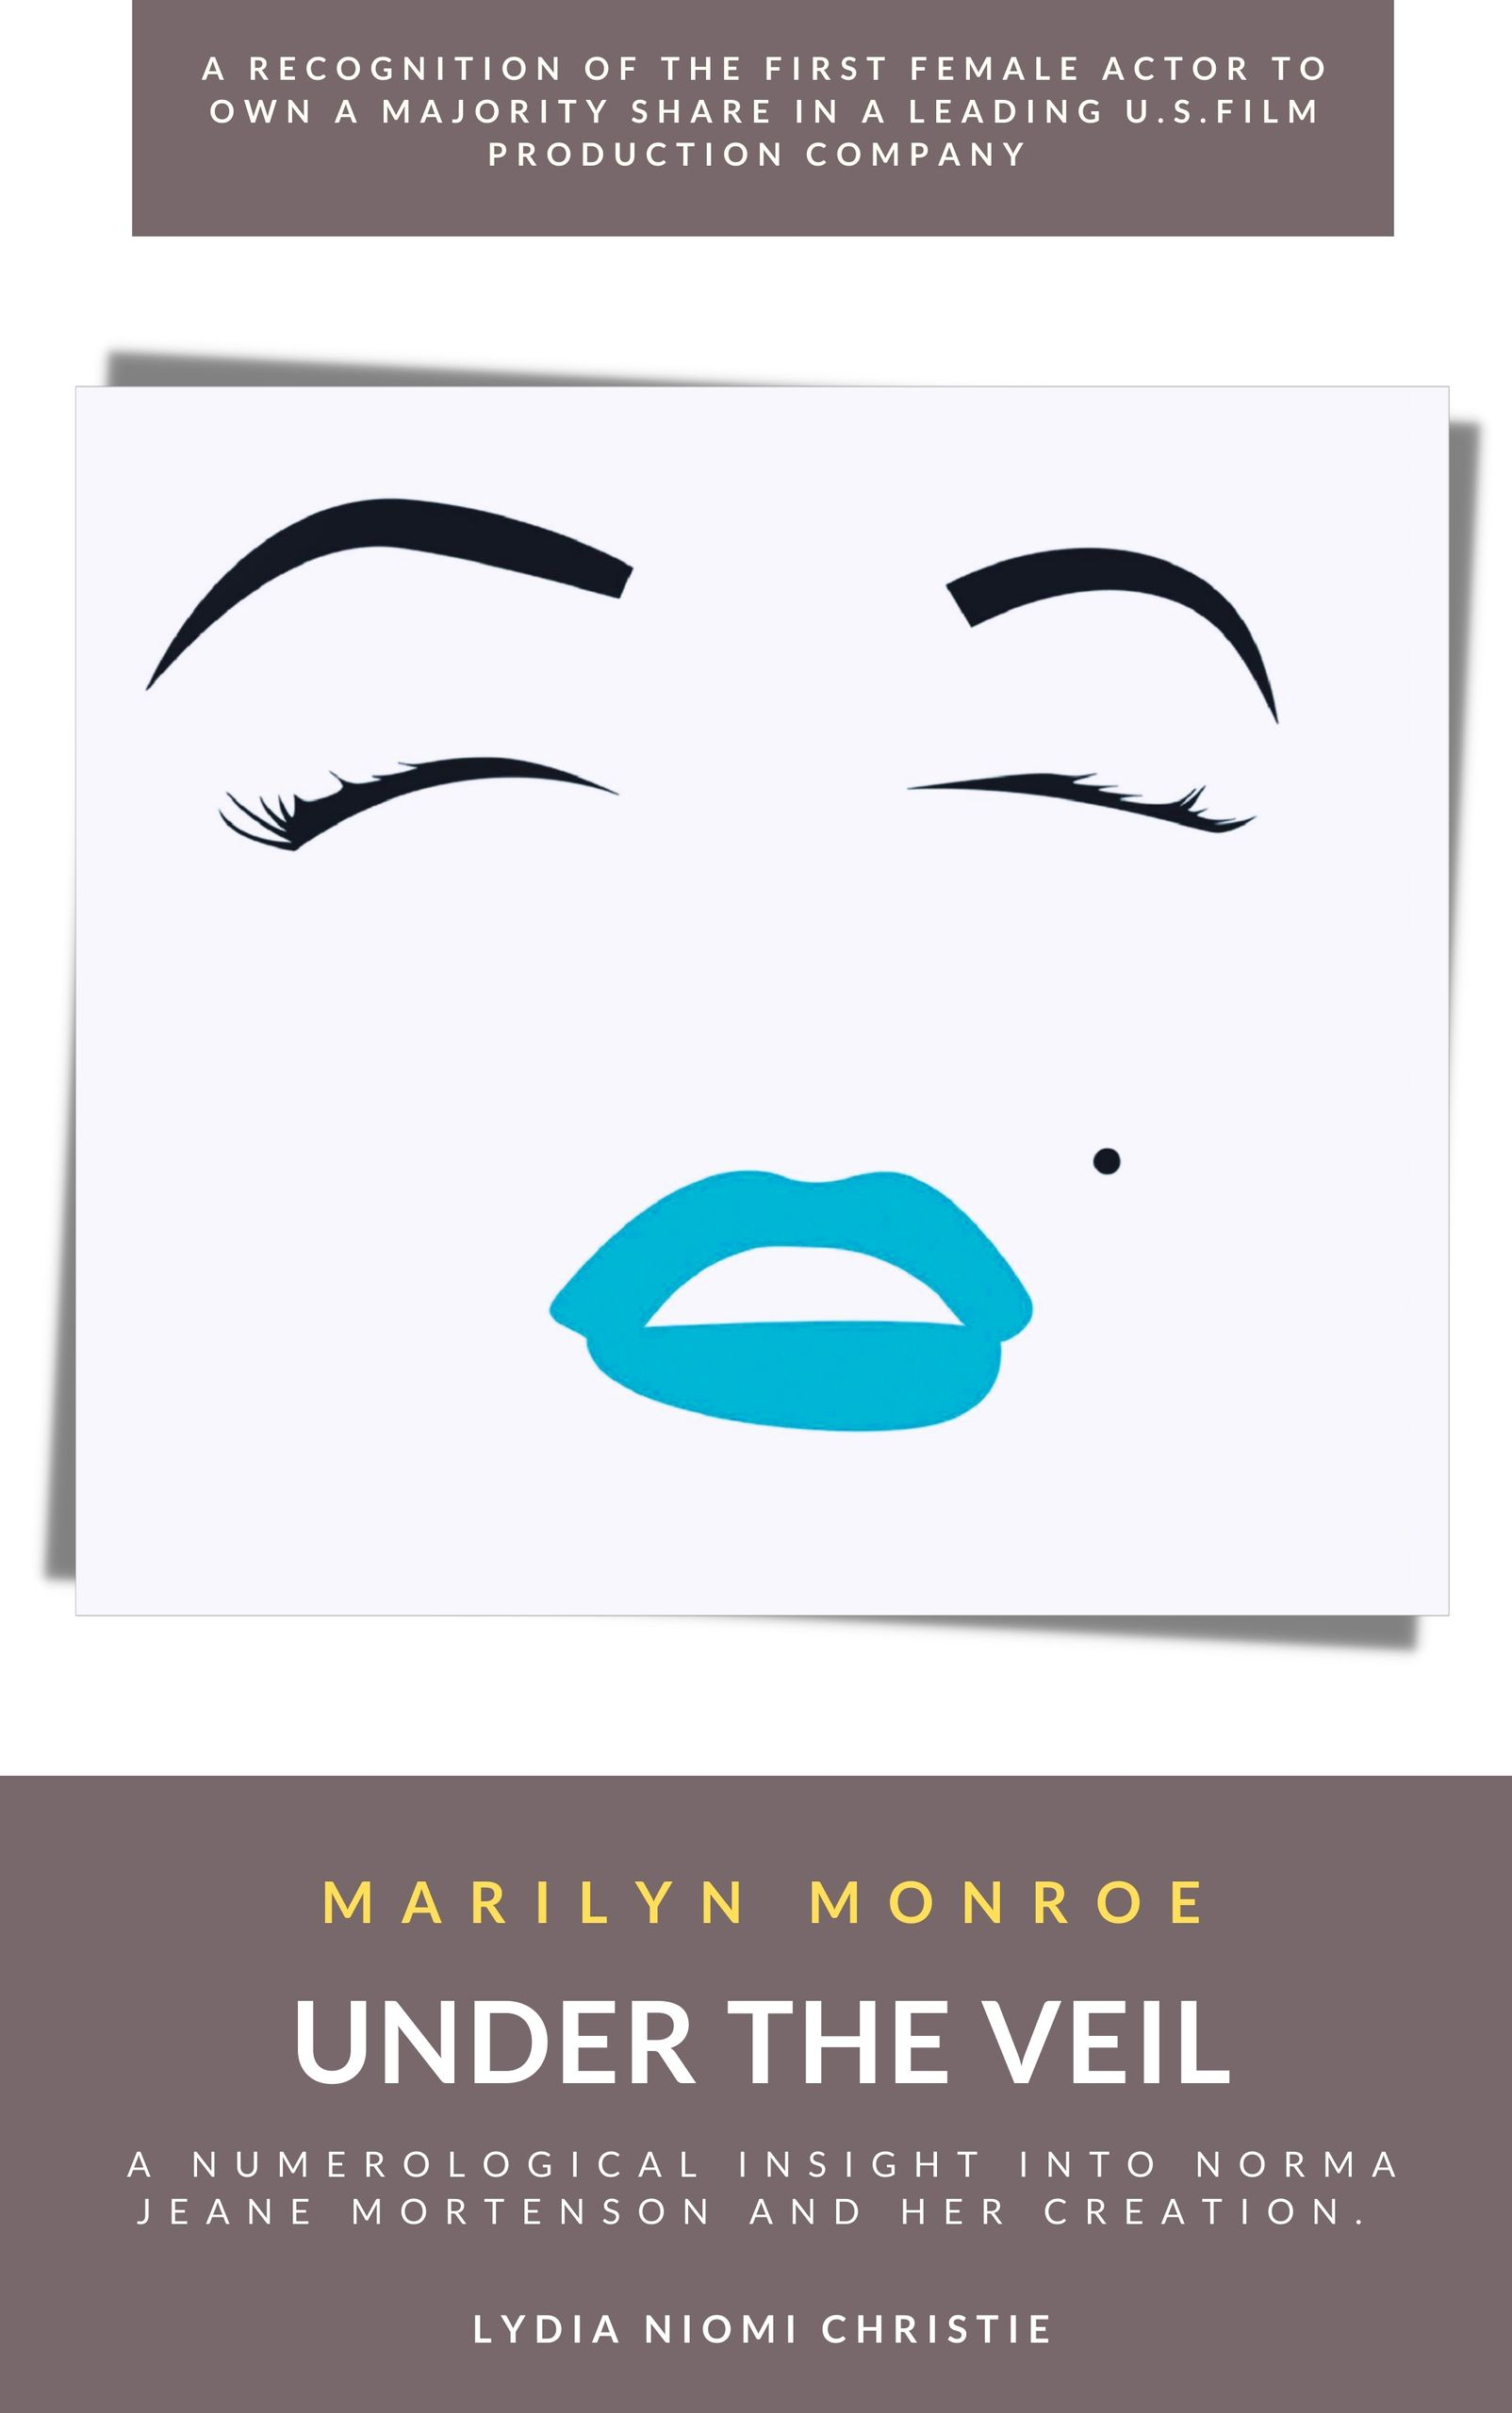 Marilyn Monroe book cover image